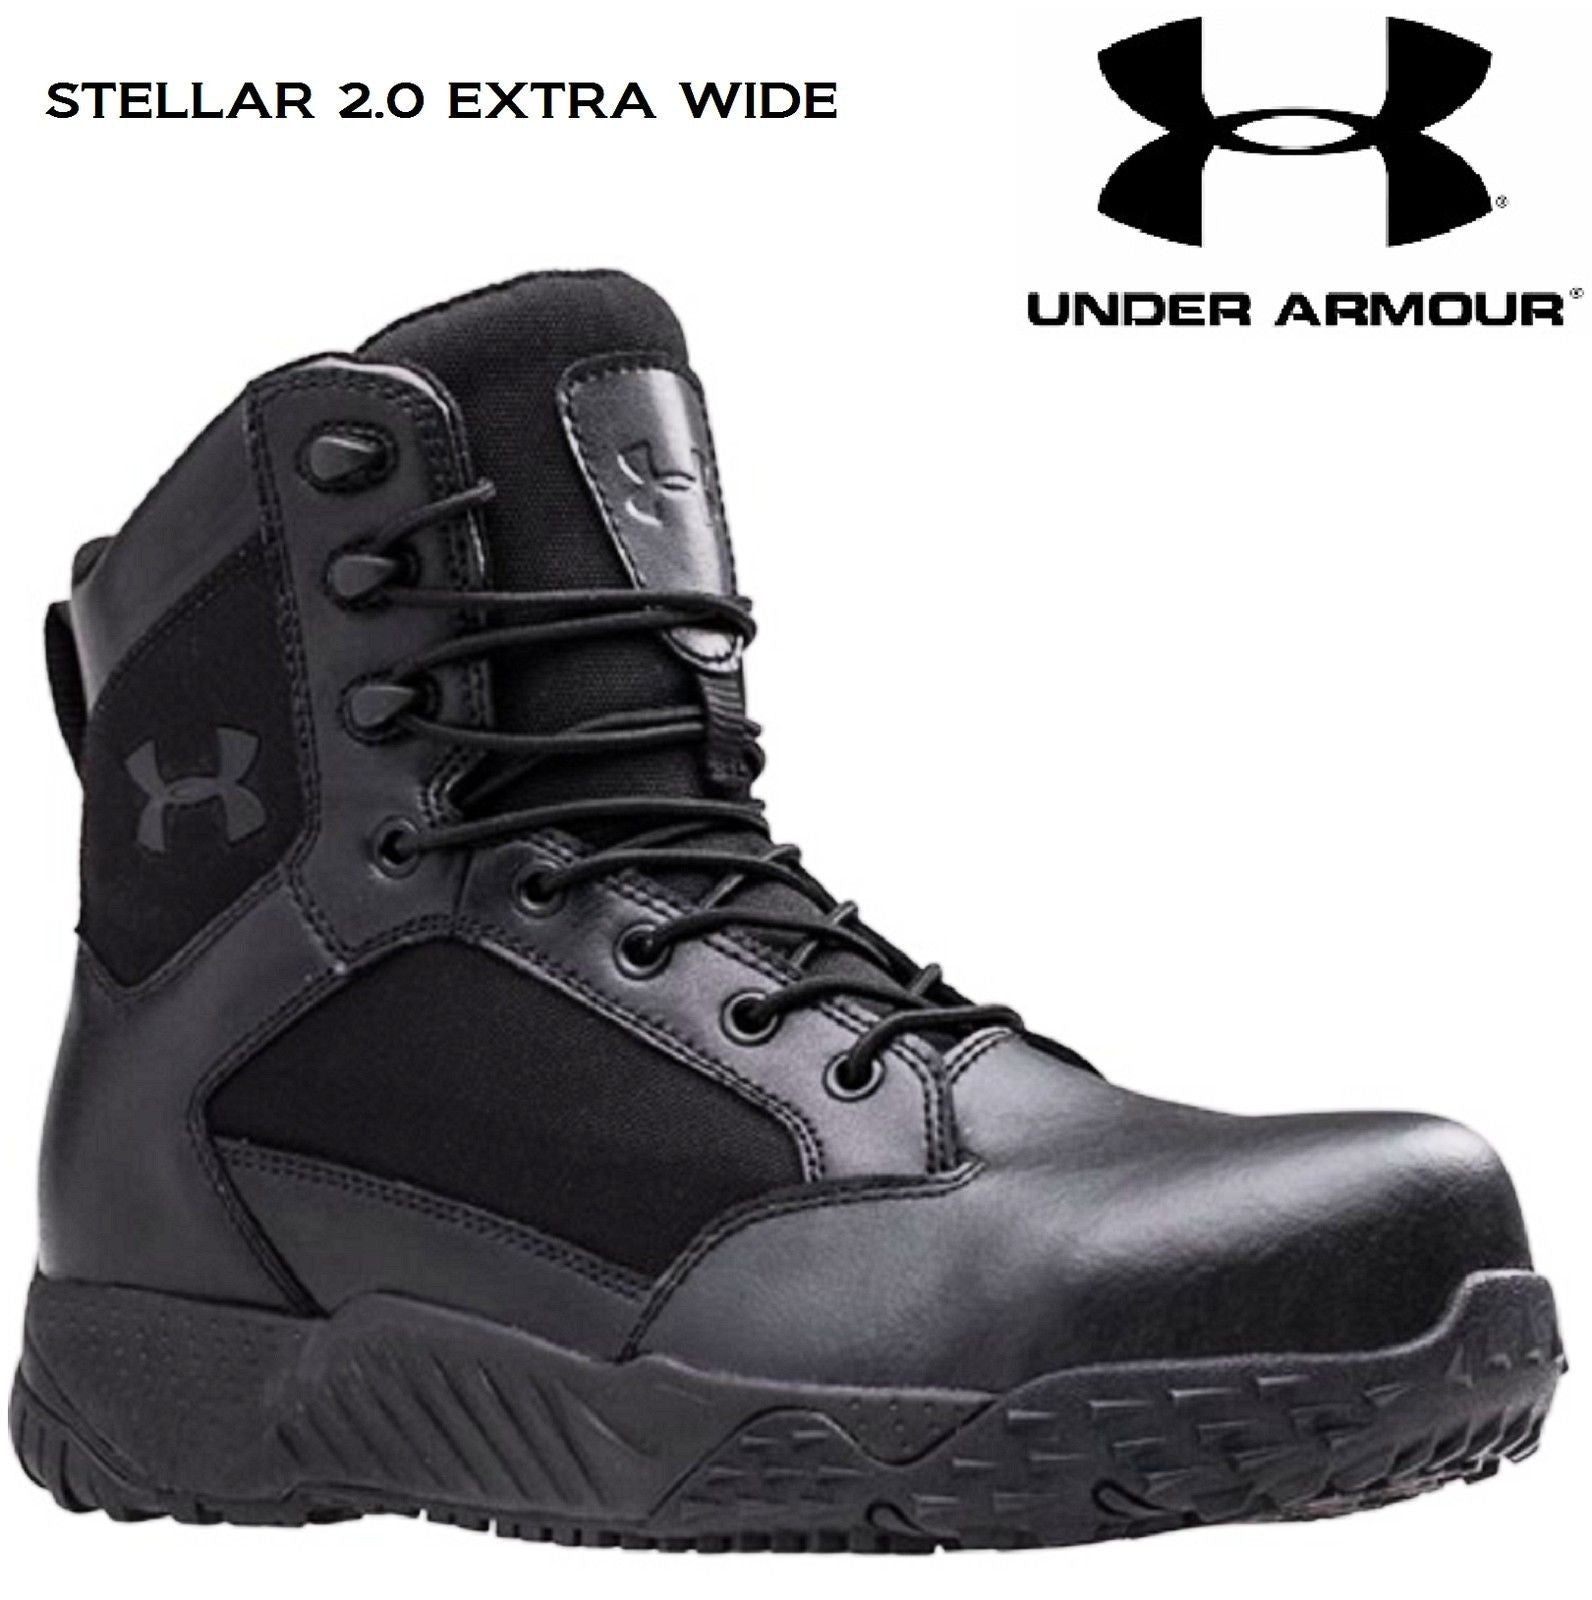 578ba71edba Under Armour Mens Black Stellar Extra Wide 2E Tactical Field Duty Work Boots